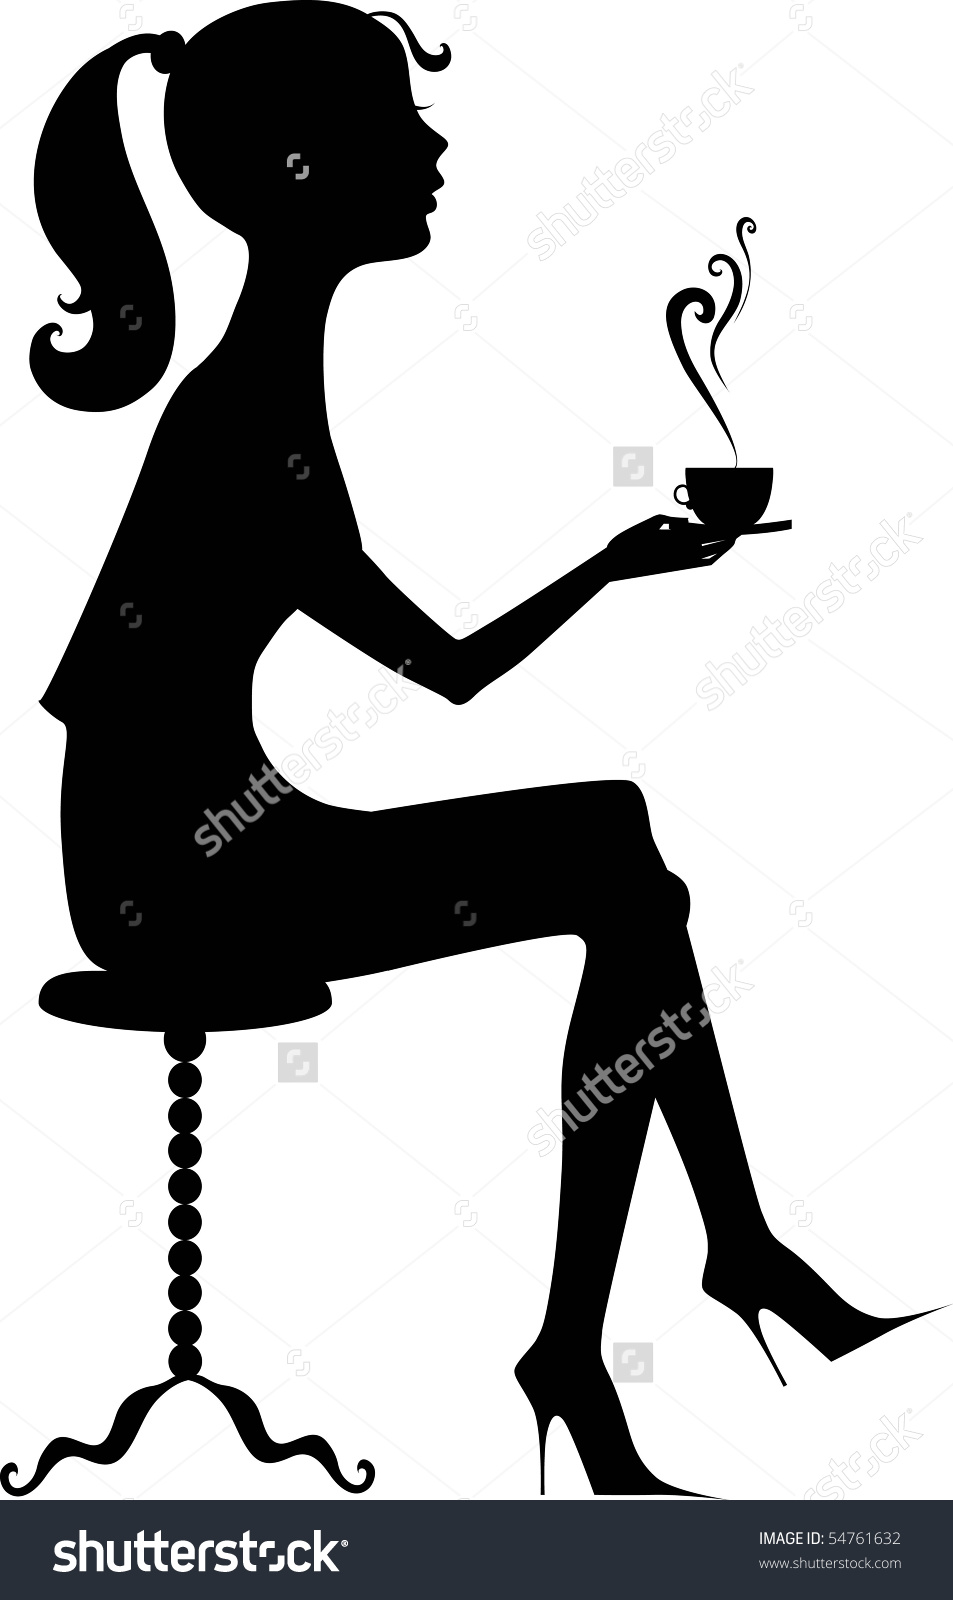 953x1600 Free Drinking Silhouette Clipart